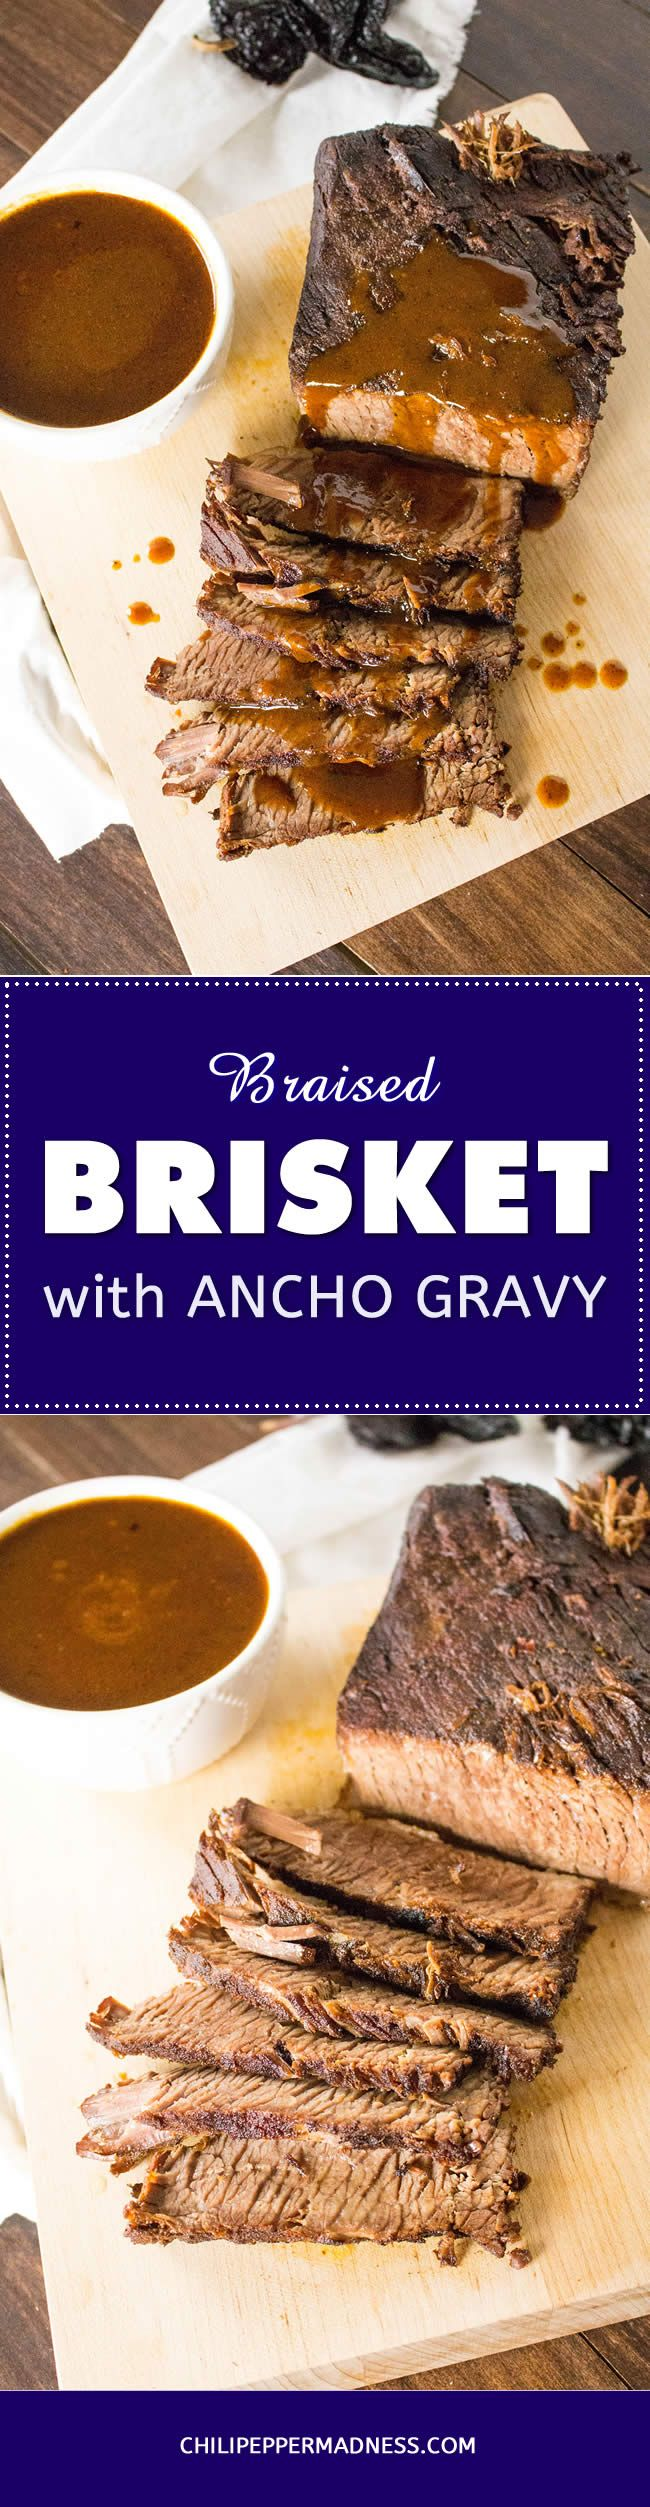 537 best chili pepper madness spicy food recipes images on braised brisket with ancho gravy spicy food recipesgrill forumfinder Choice Image